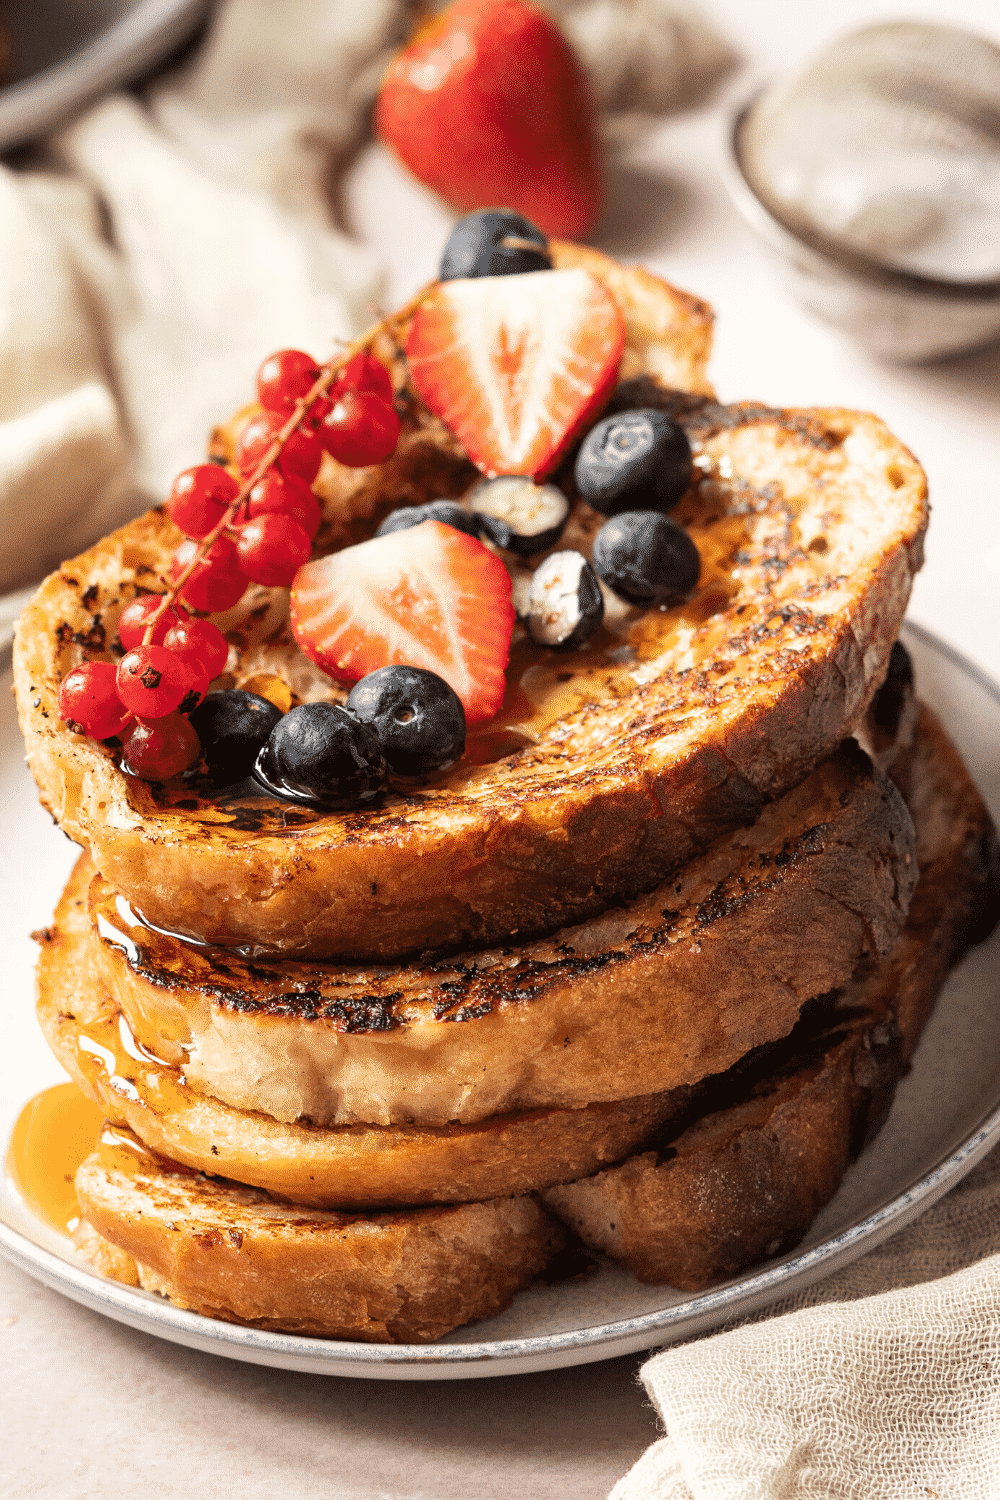 Four pieces of vegan French toast on a white plate with fresh fruit on the top slice of French toast.